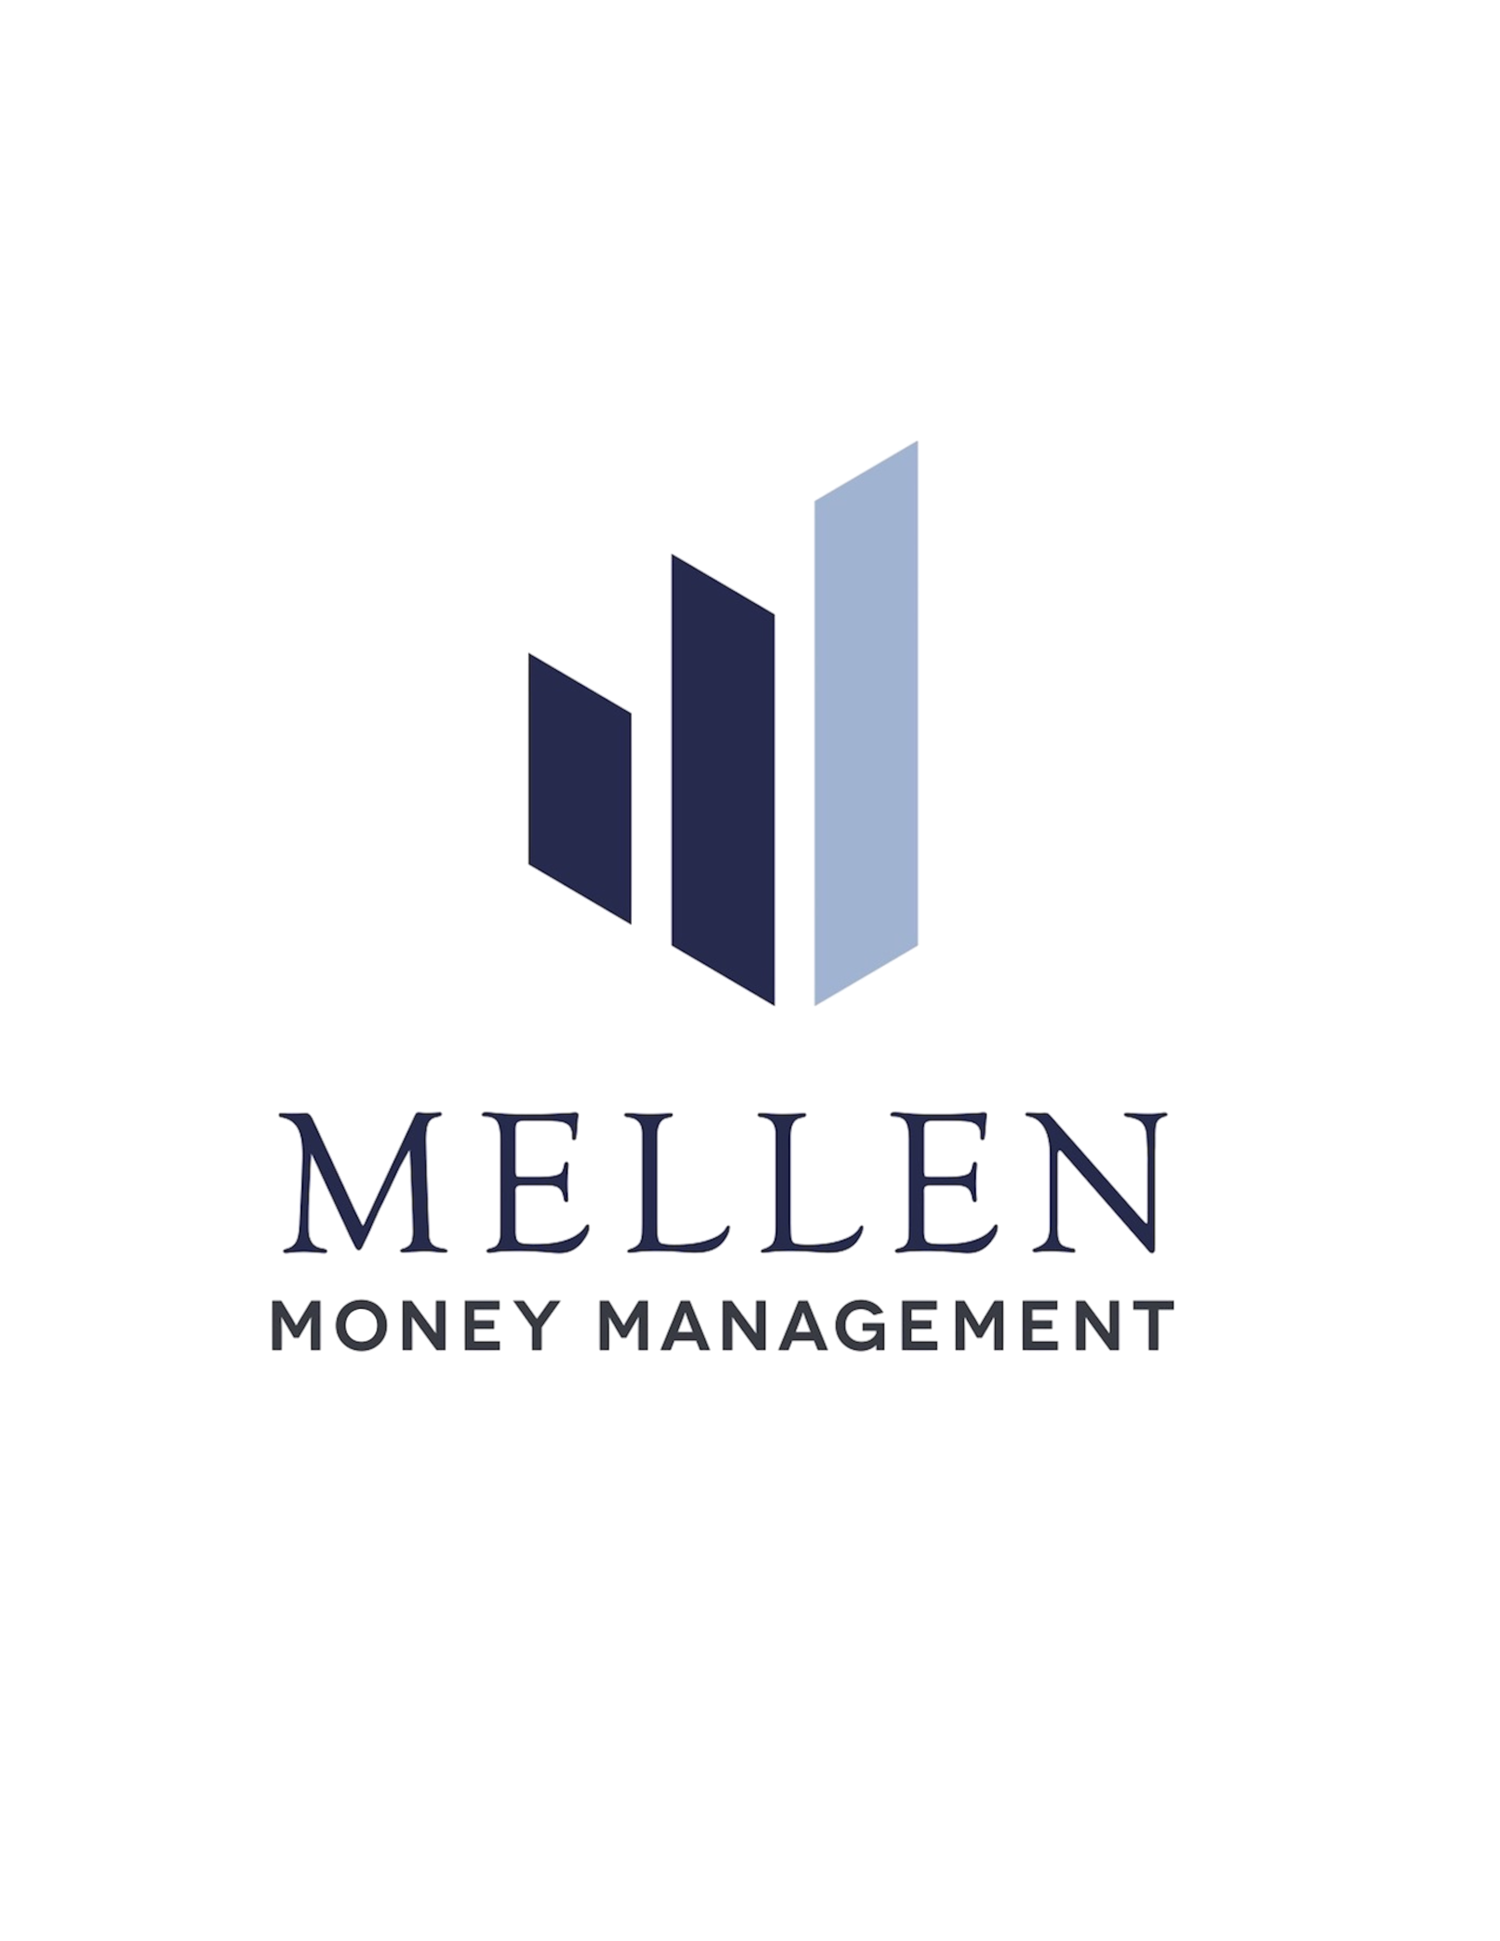 Mellen Money Management